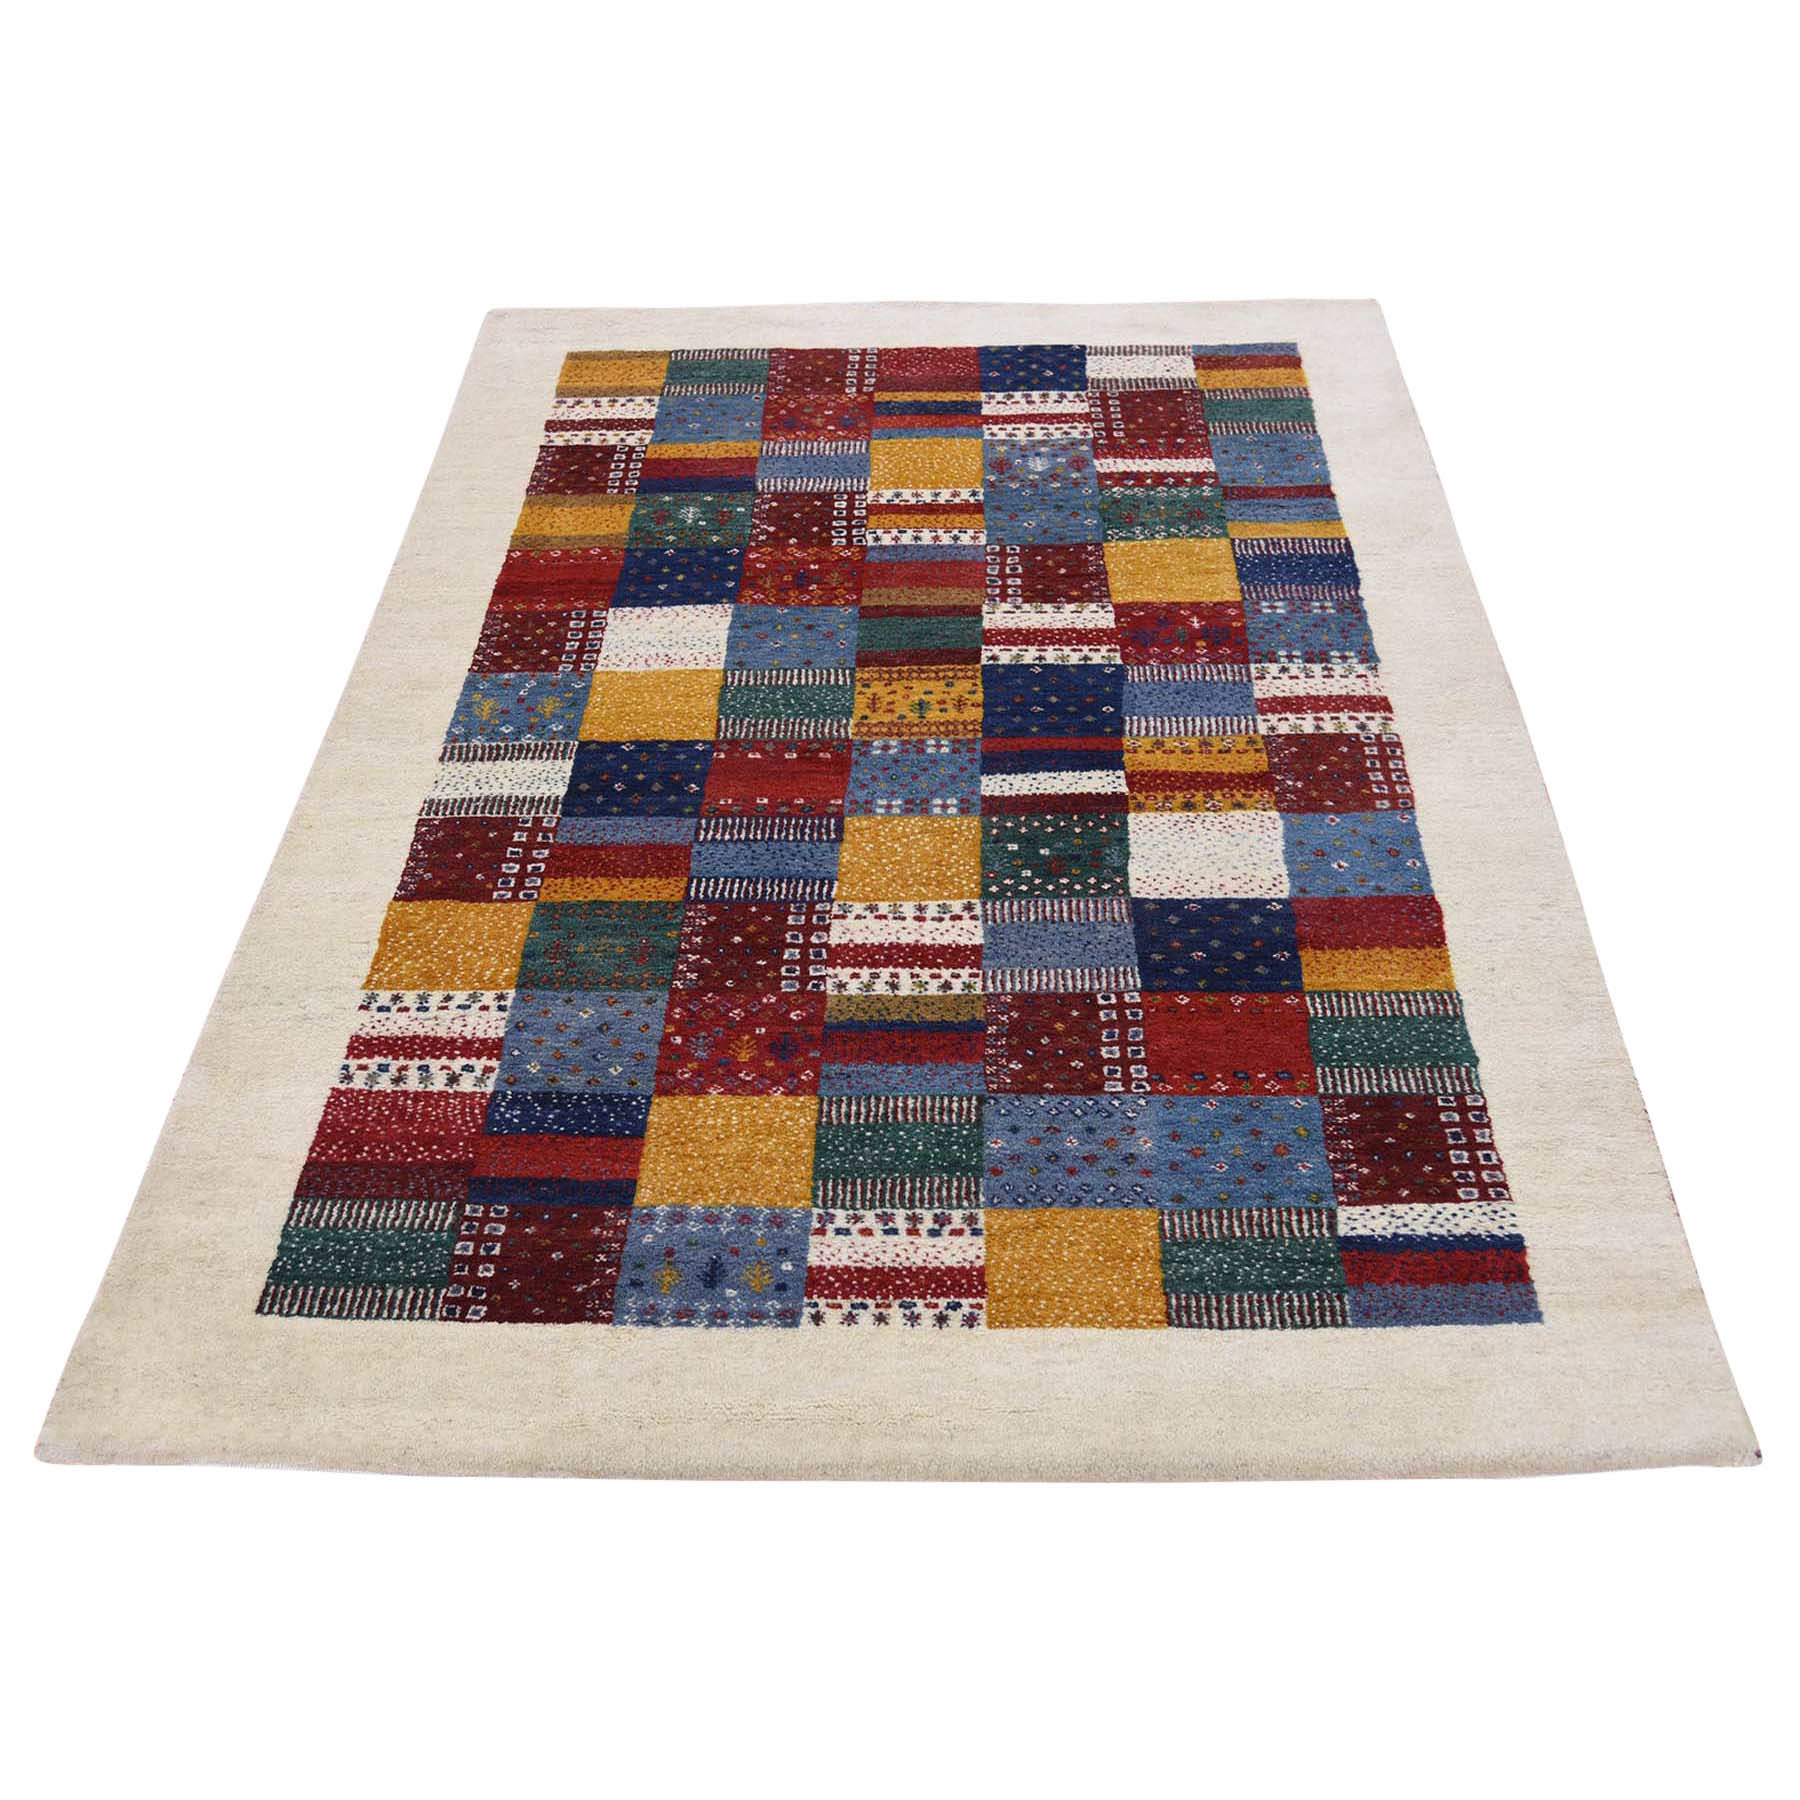 4'X6' Persian Wool Hand Knotted Lori Buft Gabbeh Patchwork Design Rug moac8ade